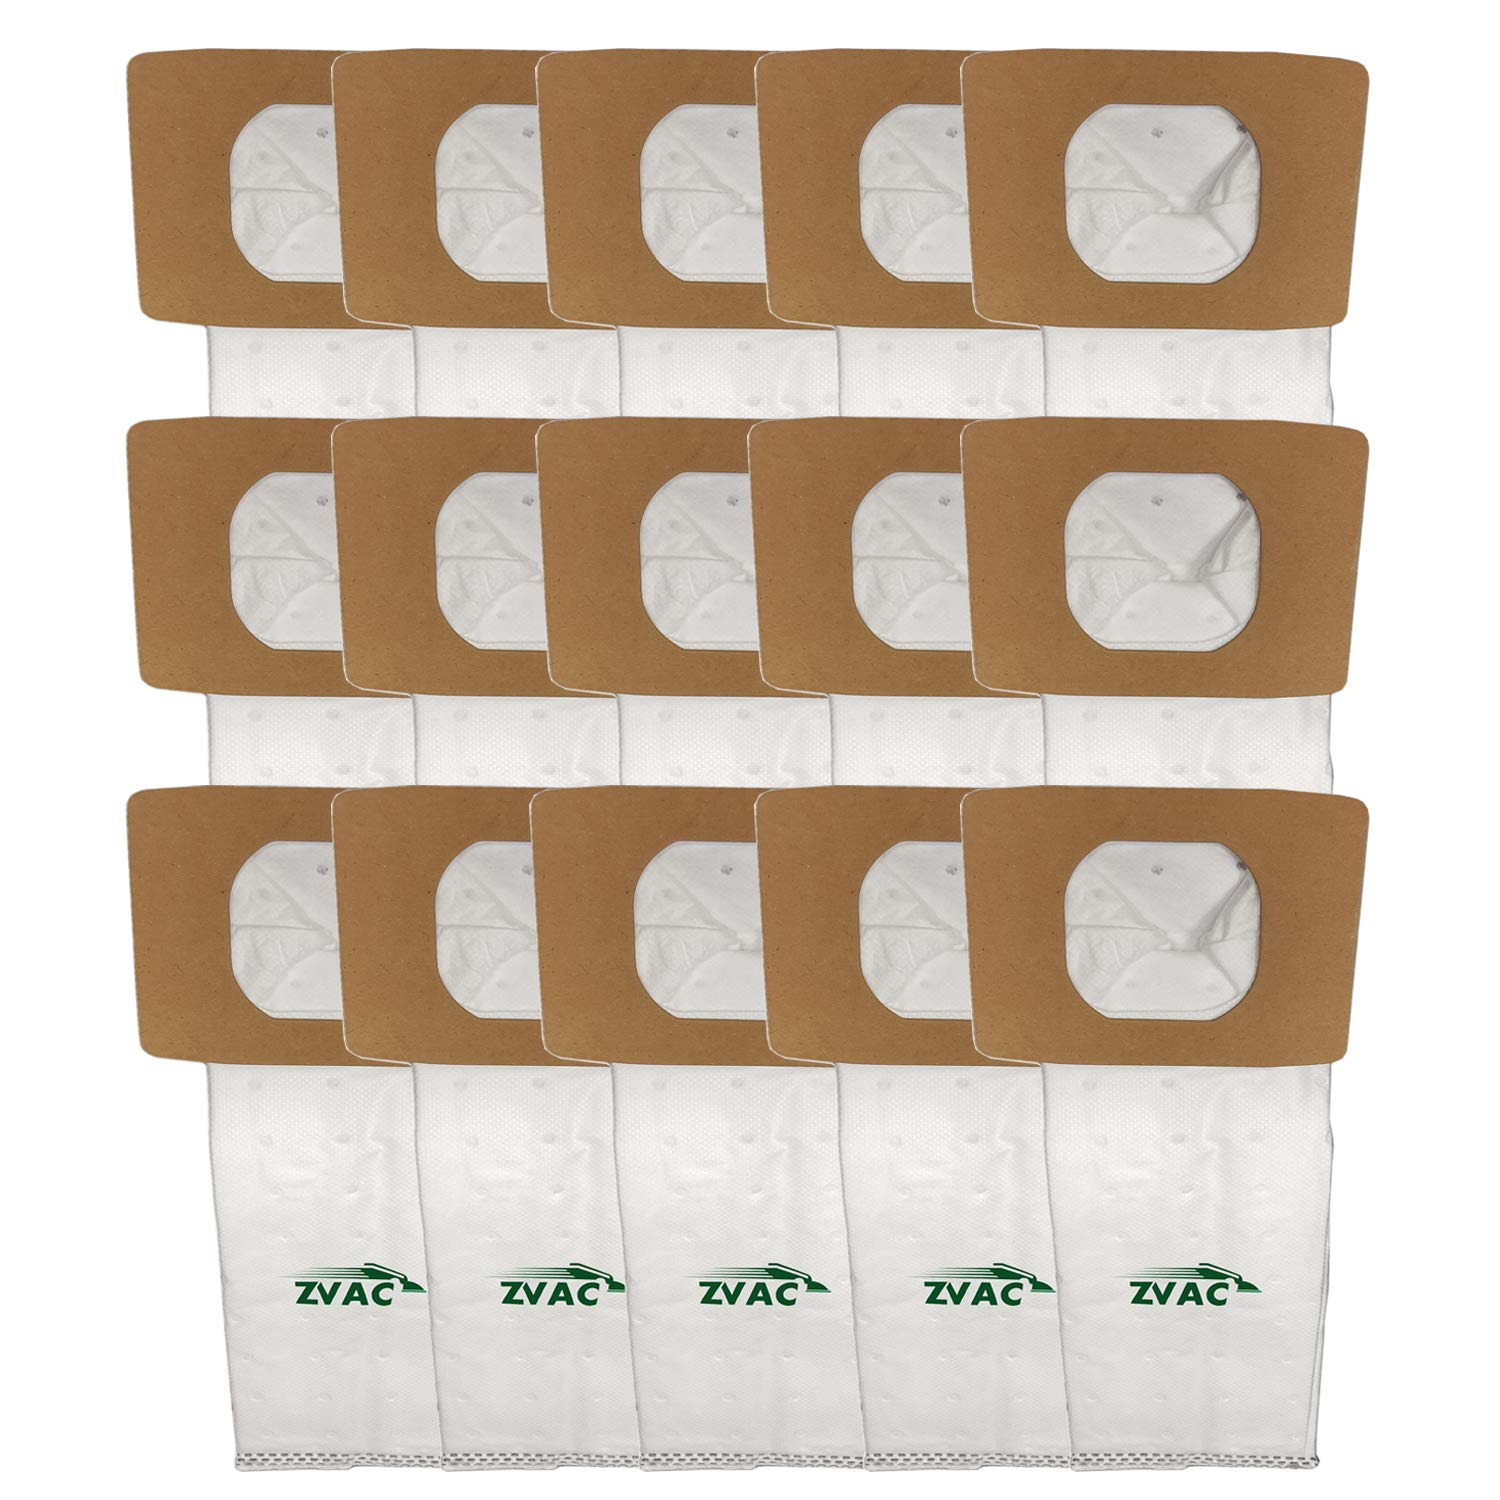 ZVac 15Pk Compatible Vacuum Bags Replacement for Hoover I Vacuum Bags.Replaces Part# AH10005, 985059002.Fits: Lightweight Canister Model UH30010COM & Other Platinum Uprights and Canister Vacuums